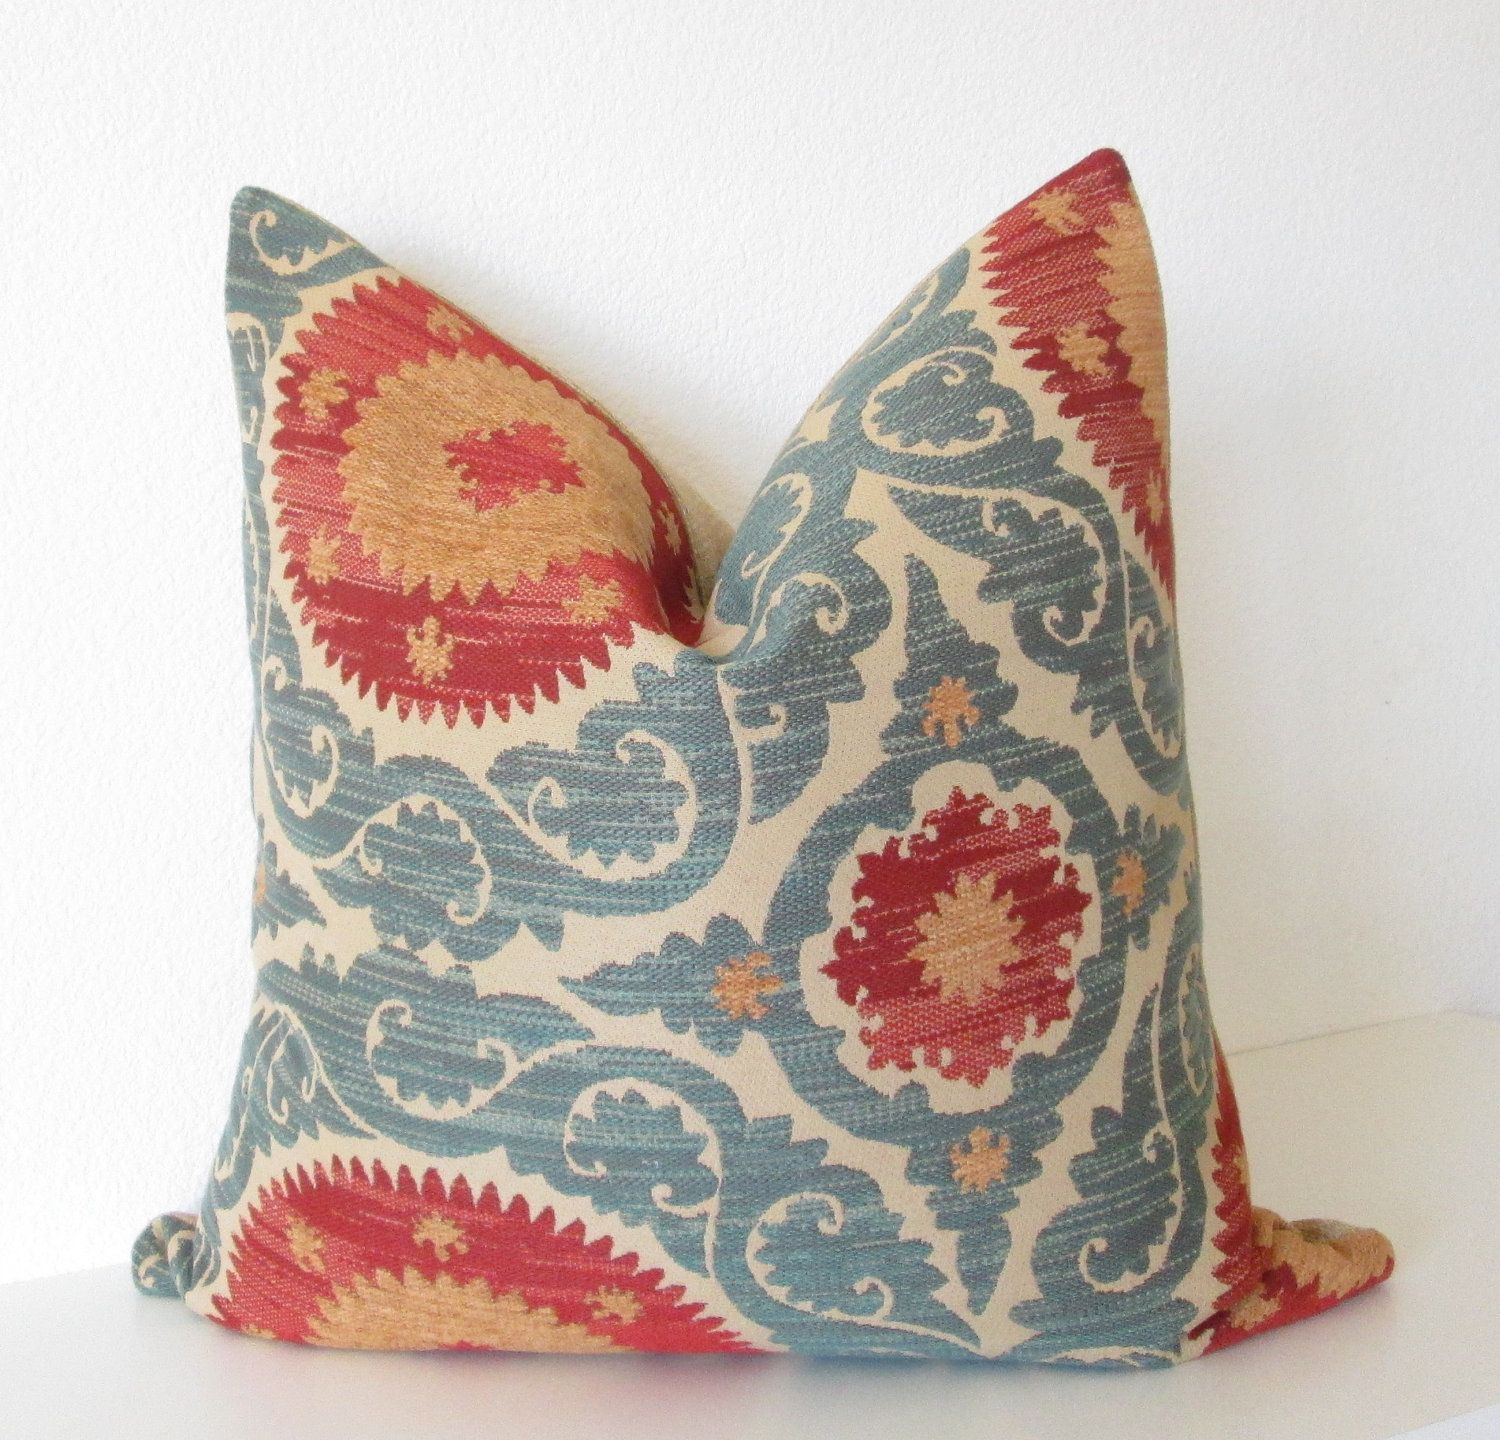 31+ At home decorative pillows ideas in 2021